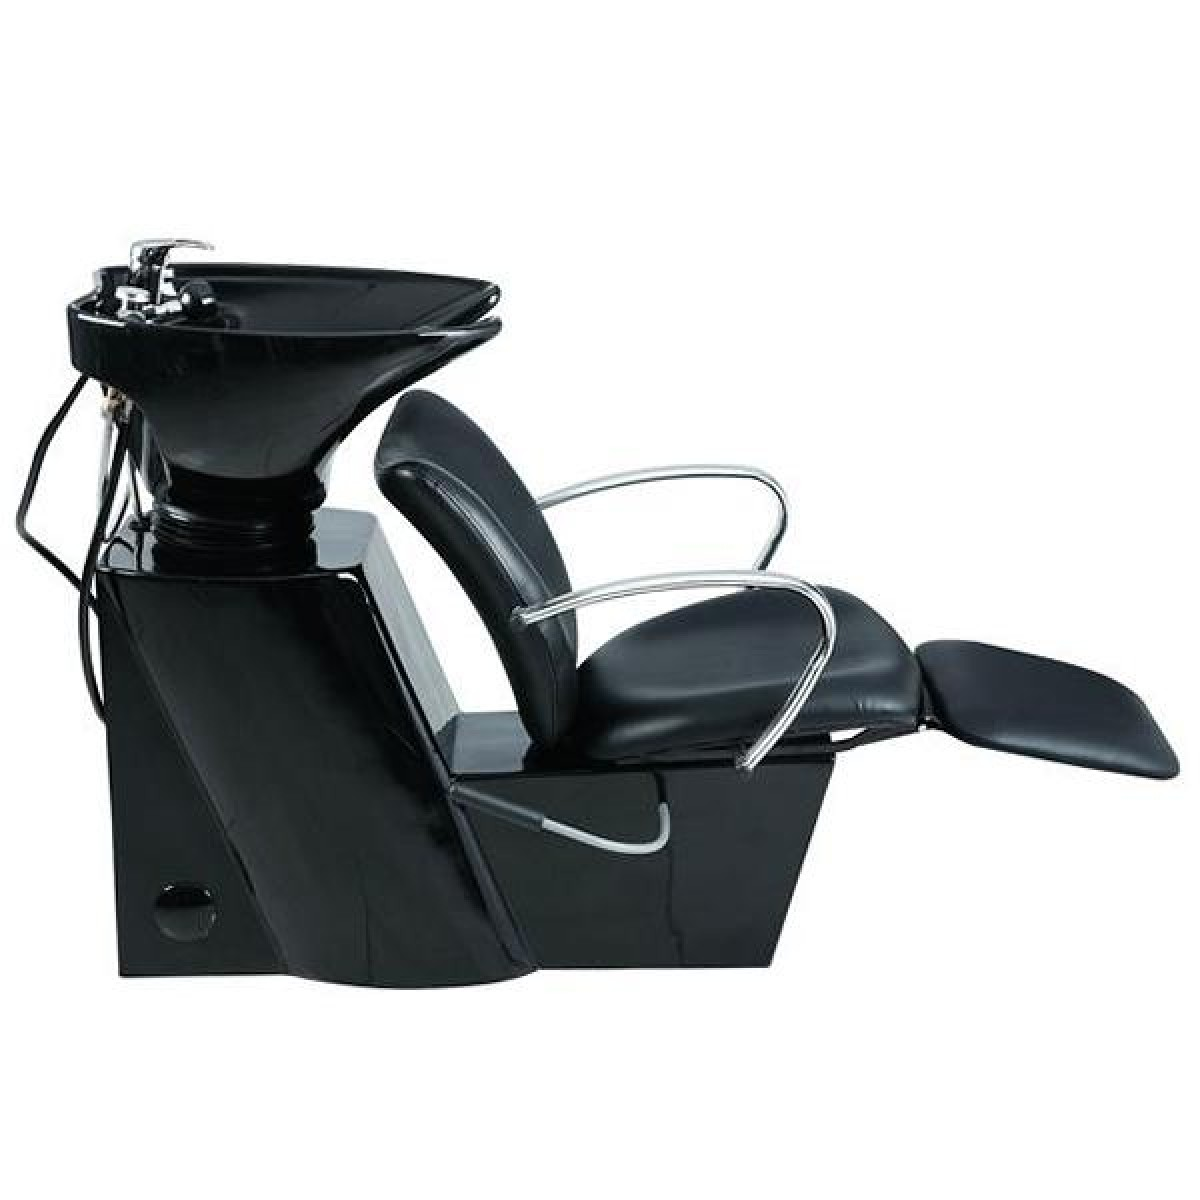 Quot Delta Quot Shampoo Bowl Without Fixtures Free Shipping